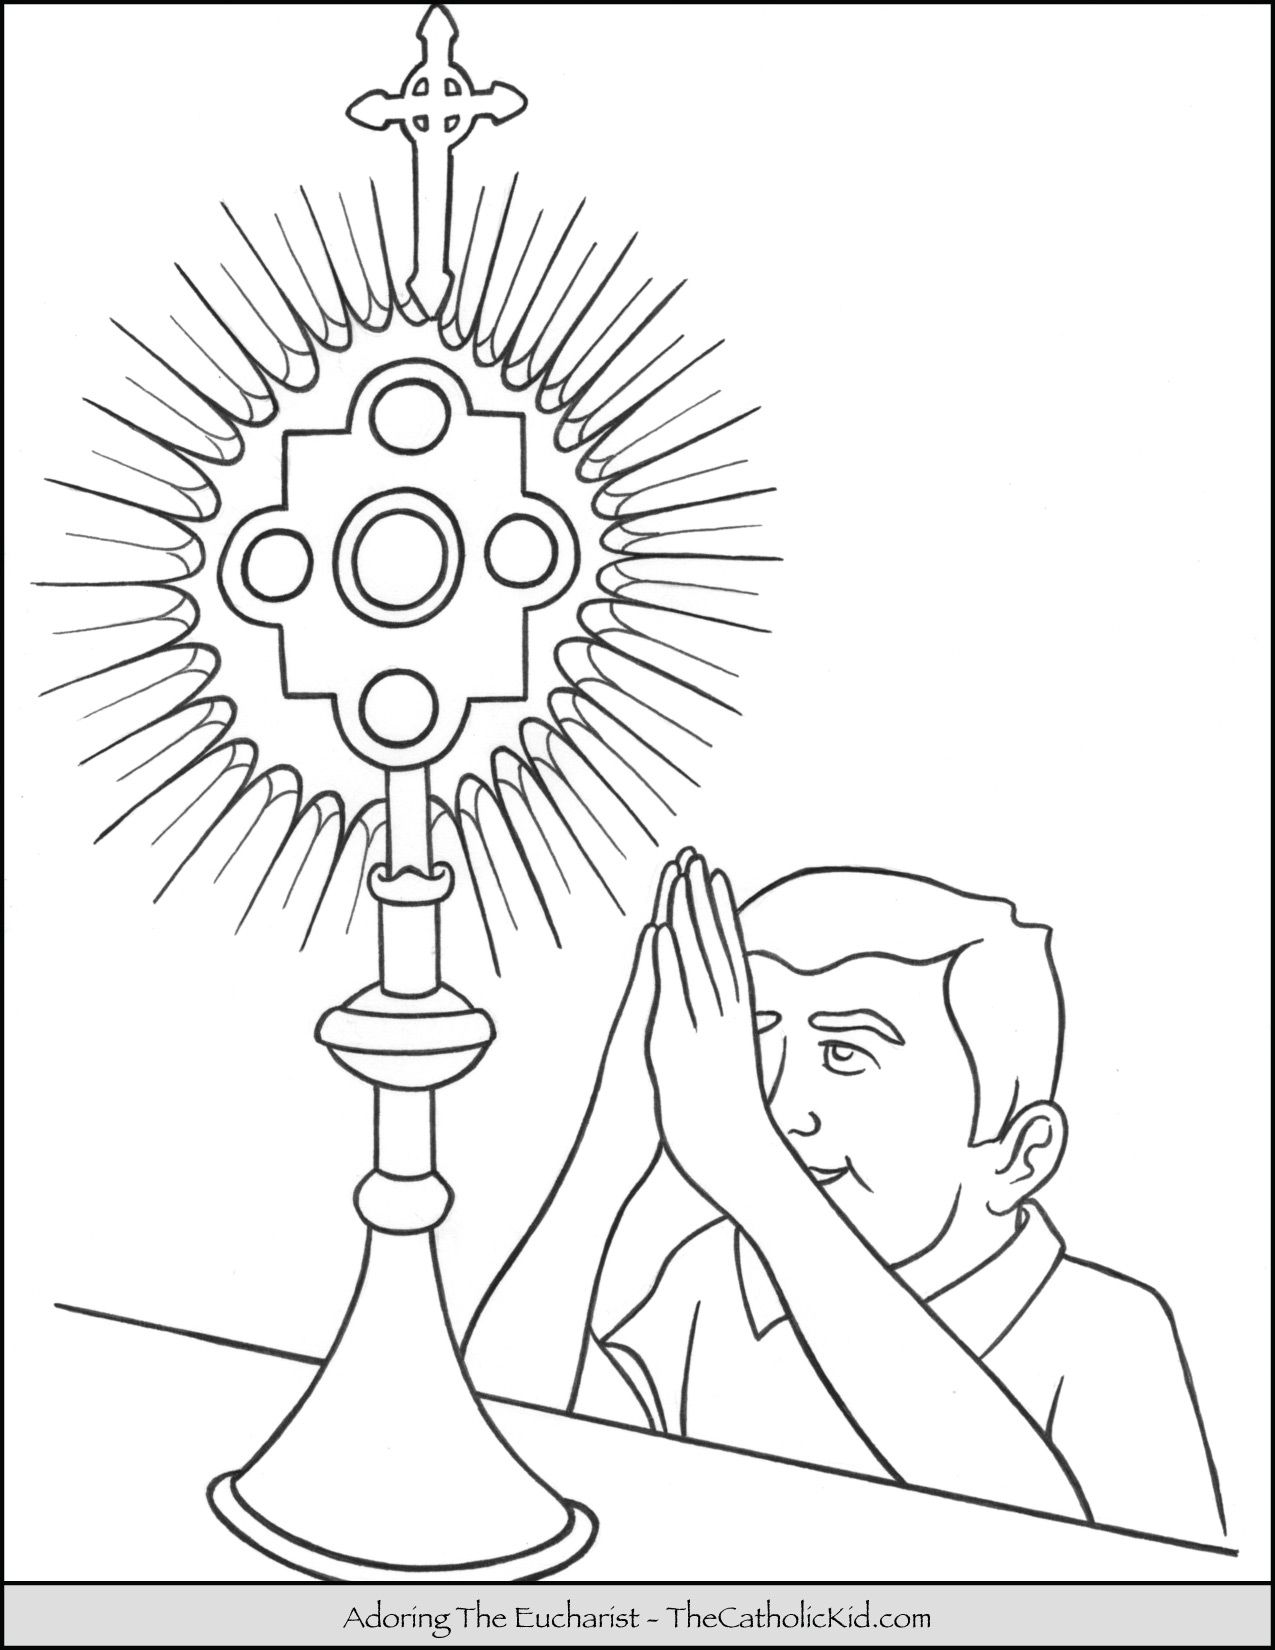 - Child Adoring The Holy Eucharist Coloring Page - TheCatholicKid